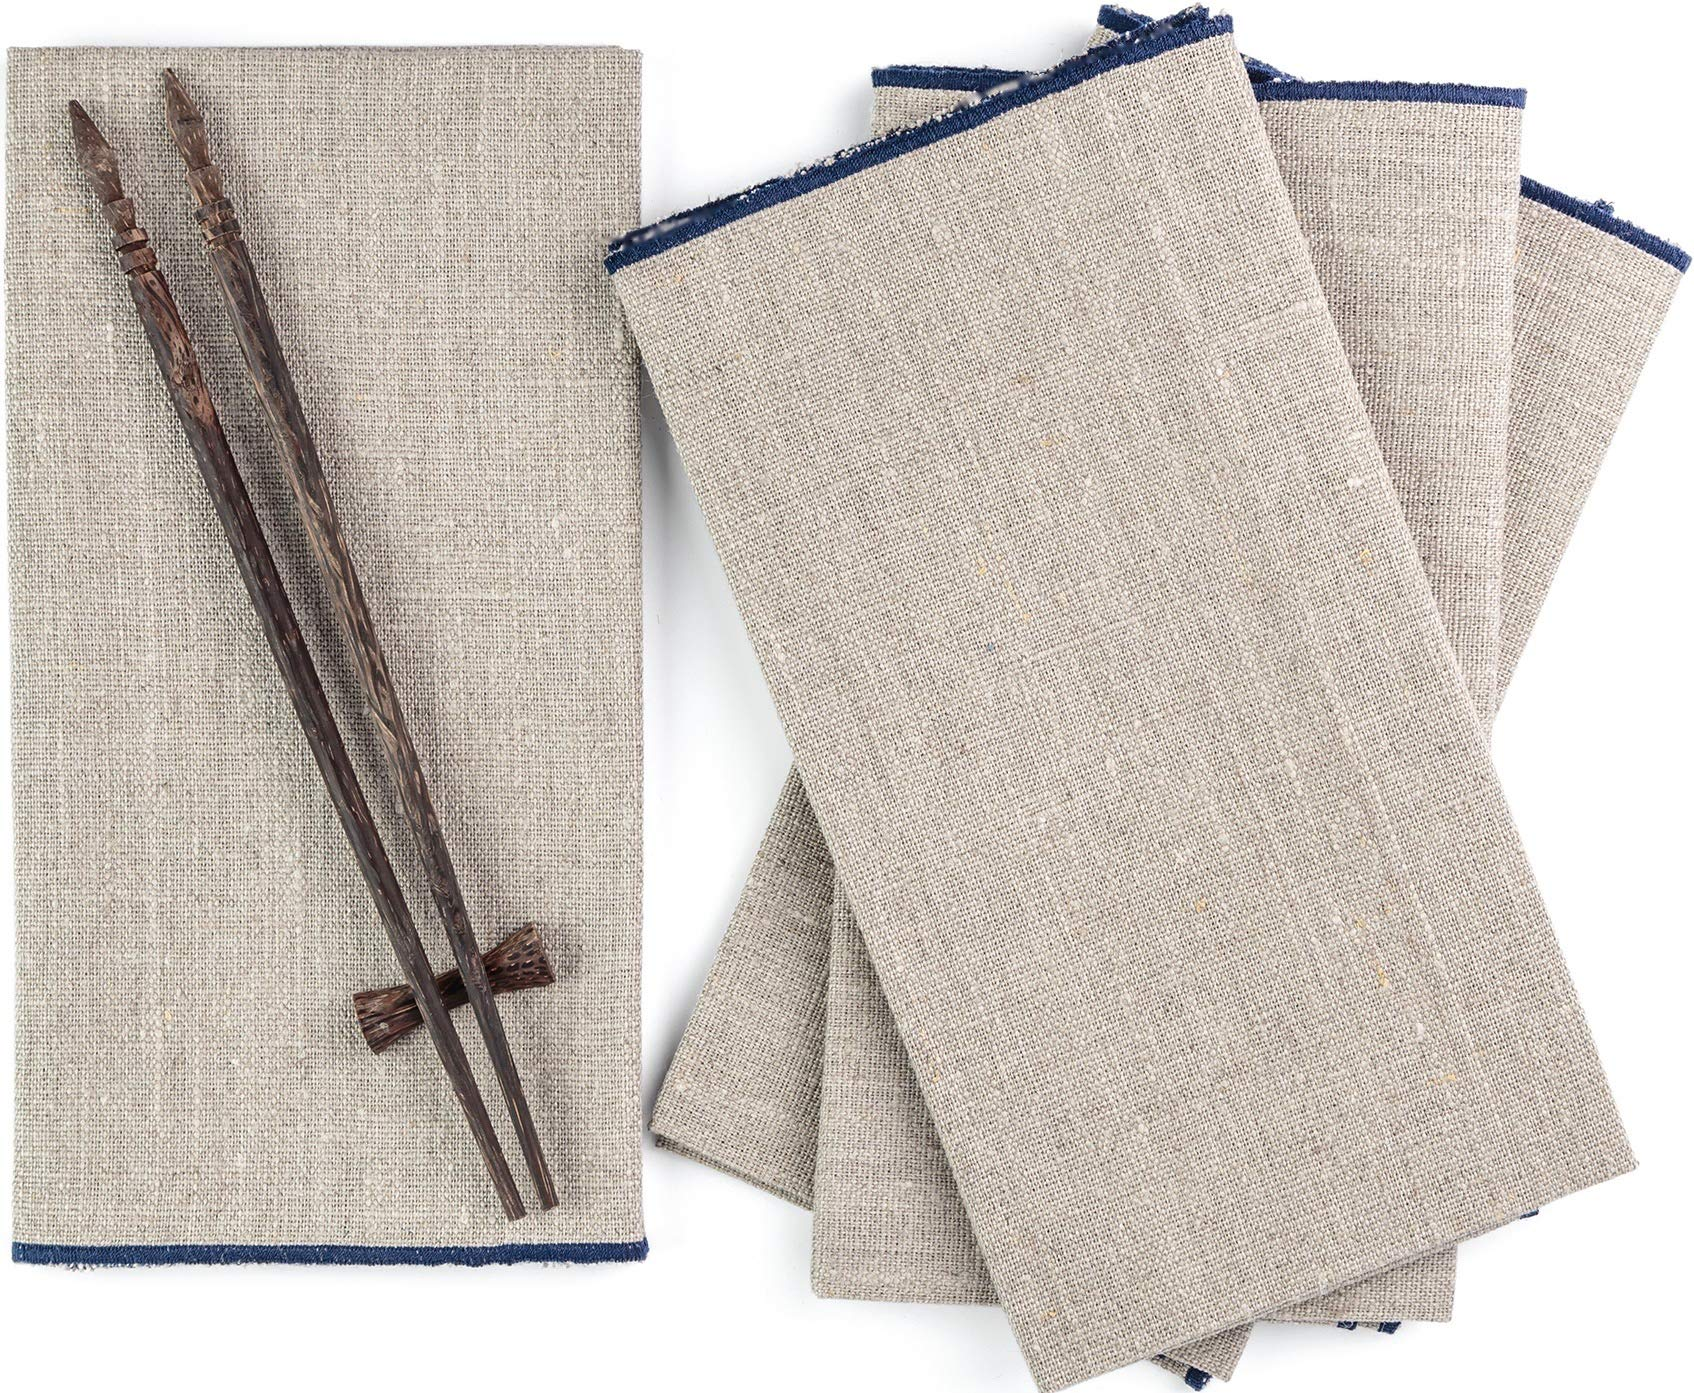 Pure Linen Dinner Napkins 20x20 inch – Set of 4 Pure European Flax Square Kitchen Napkins – Soft and Durable Cloth – Blue and Natural Dinner Napkins for Restaurants, Birthdays, Wedding Table Decor